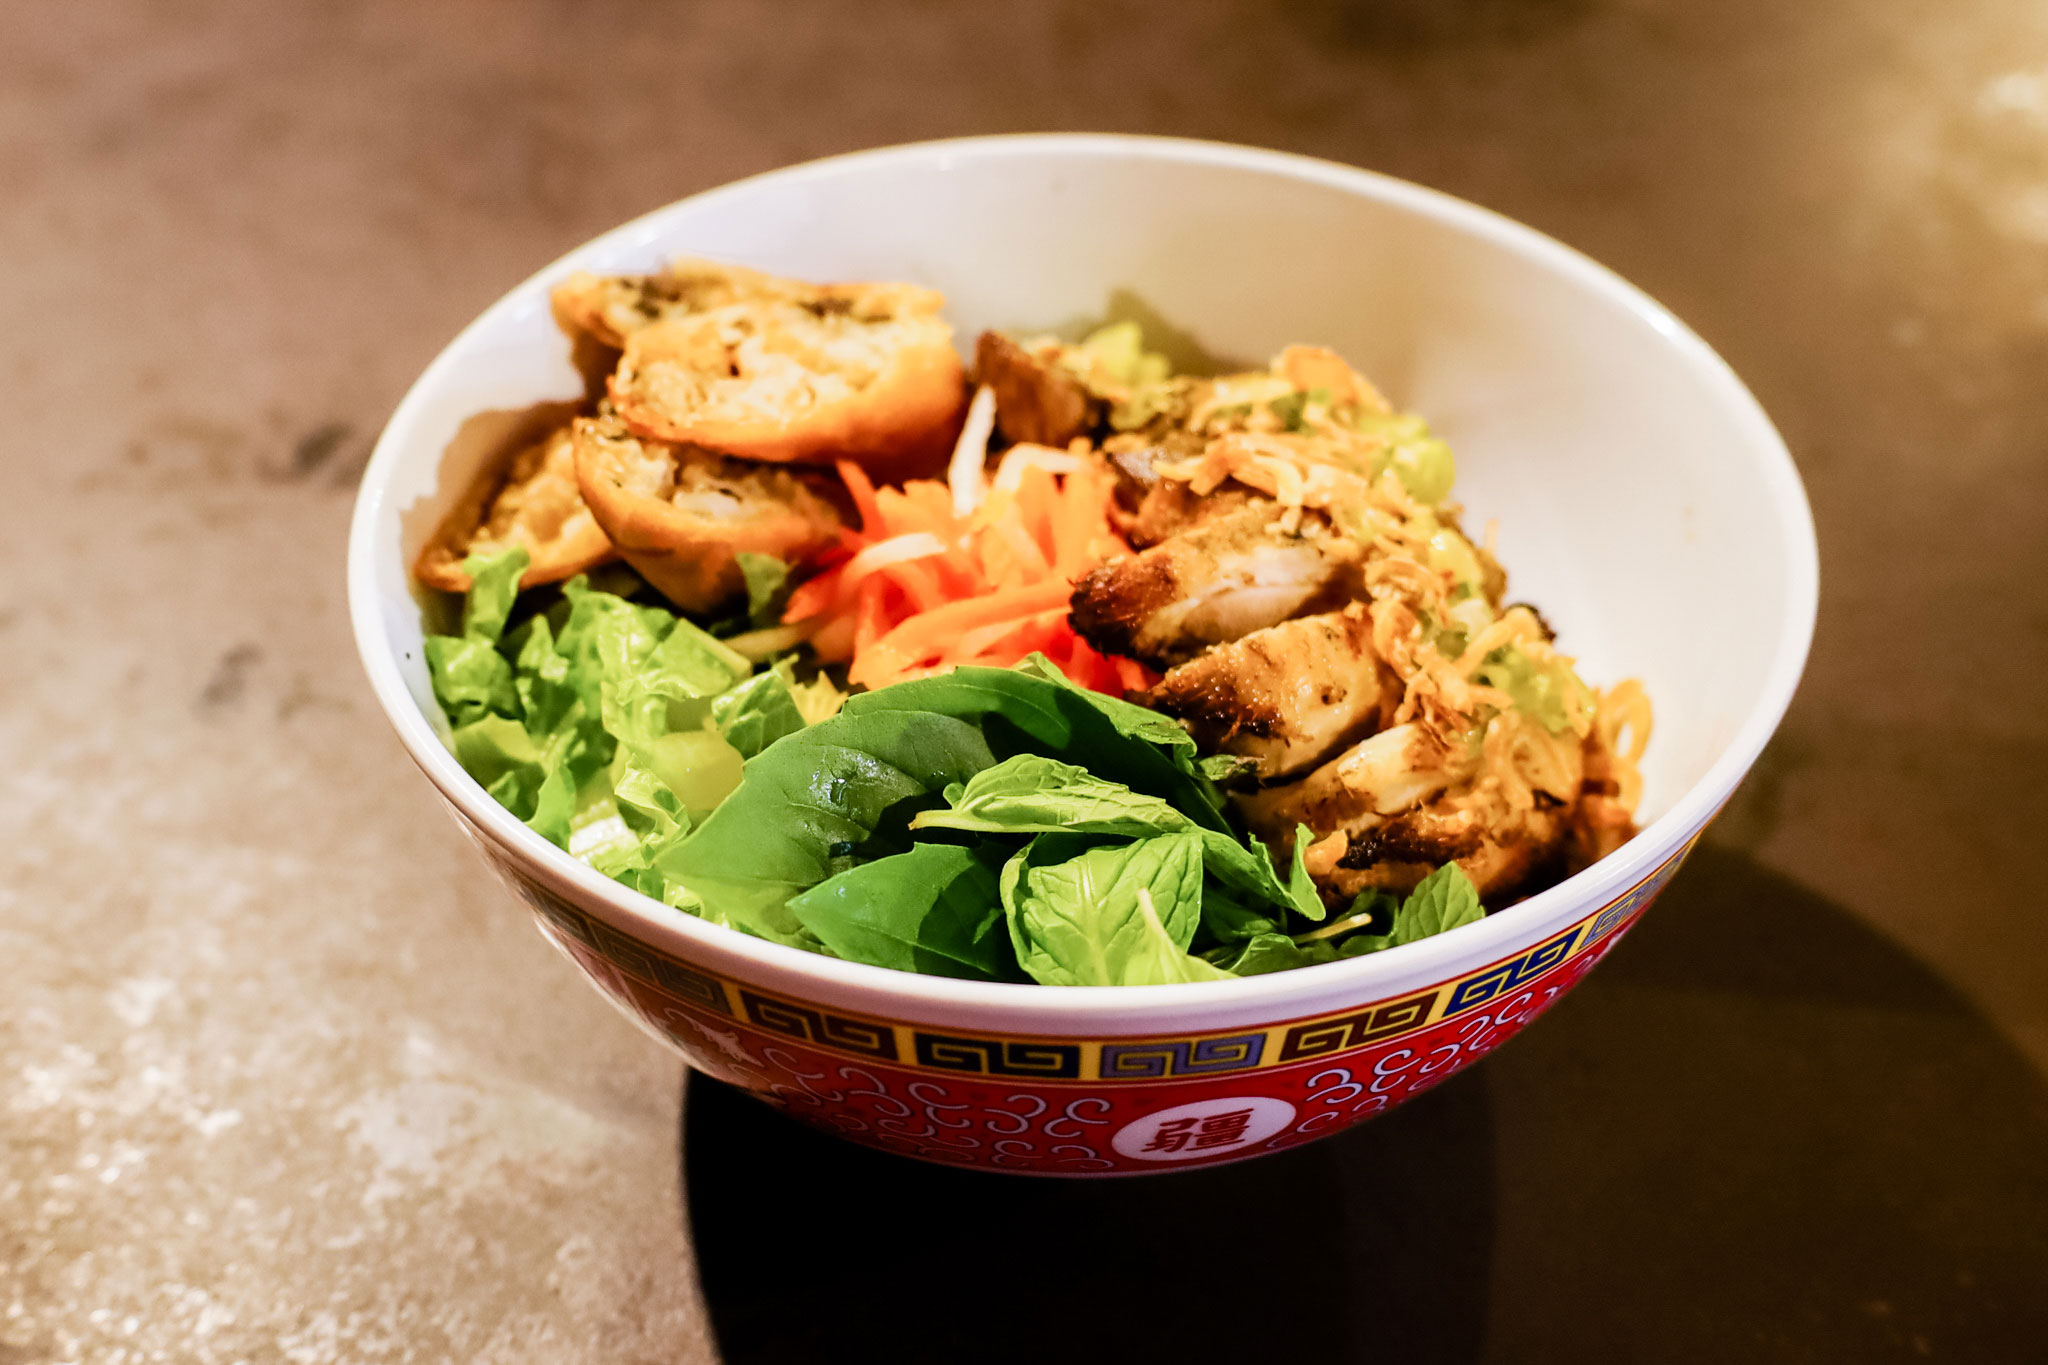 A bowl of Viatnamese noodles topped with grilled chicken.